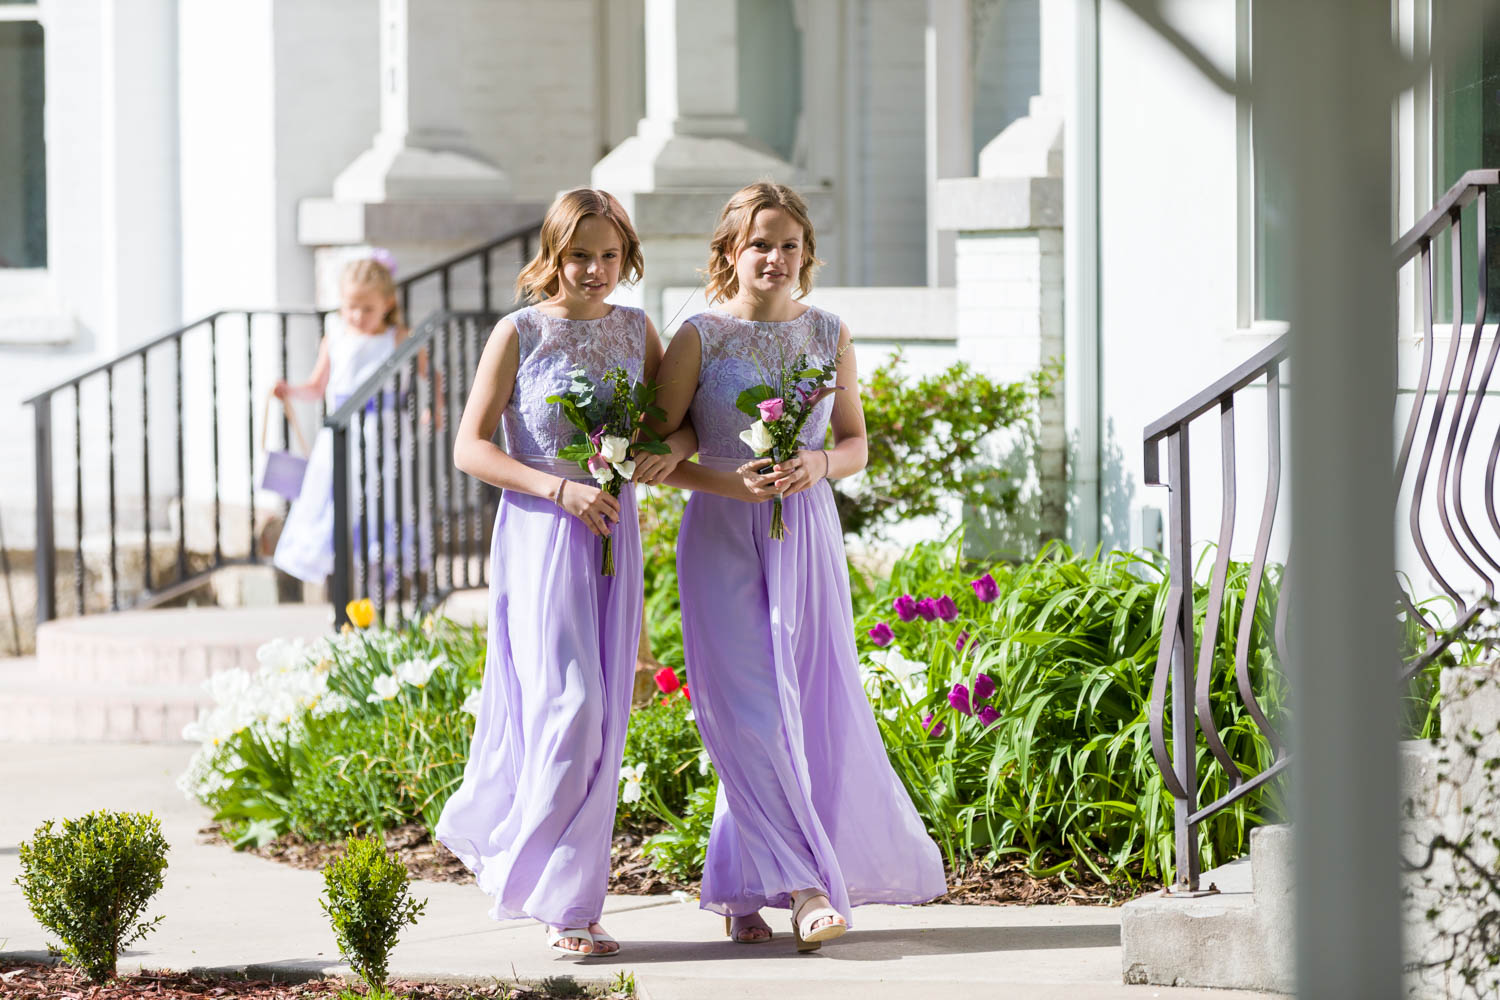 Identical twins as bridesmaids